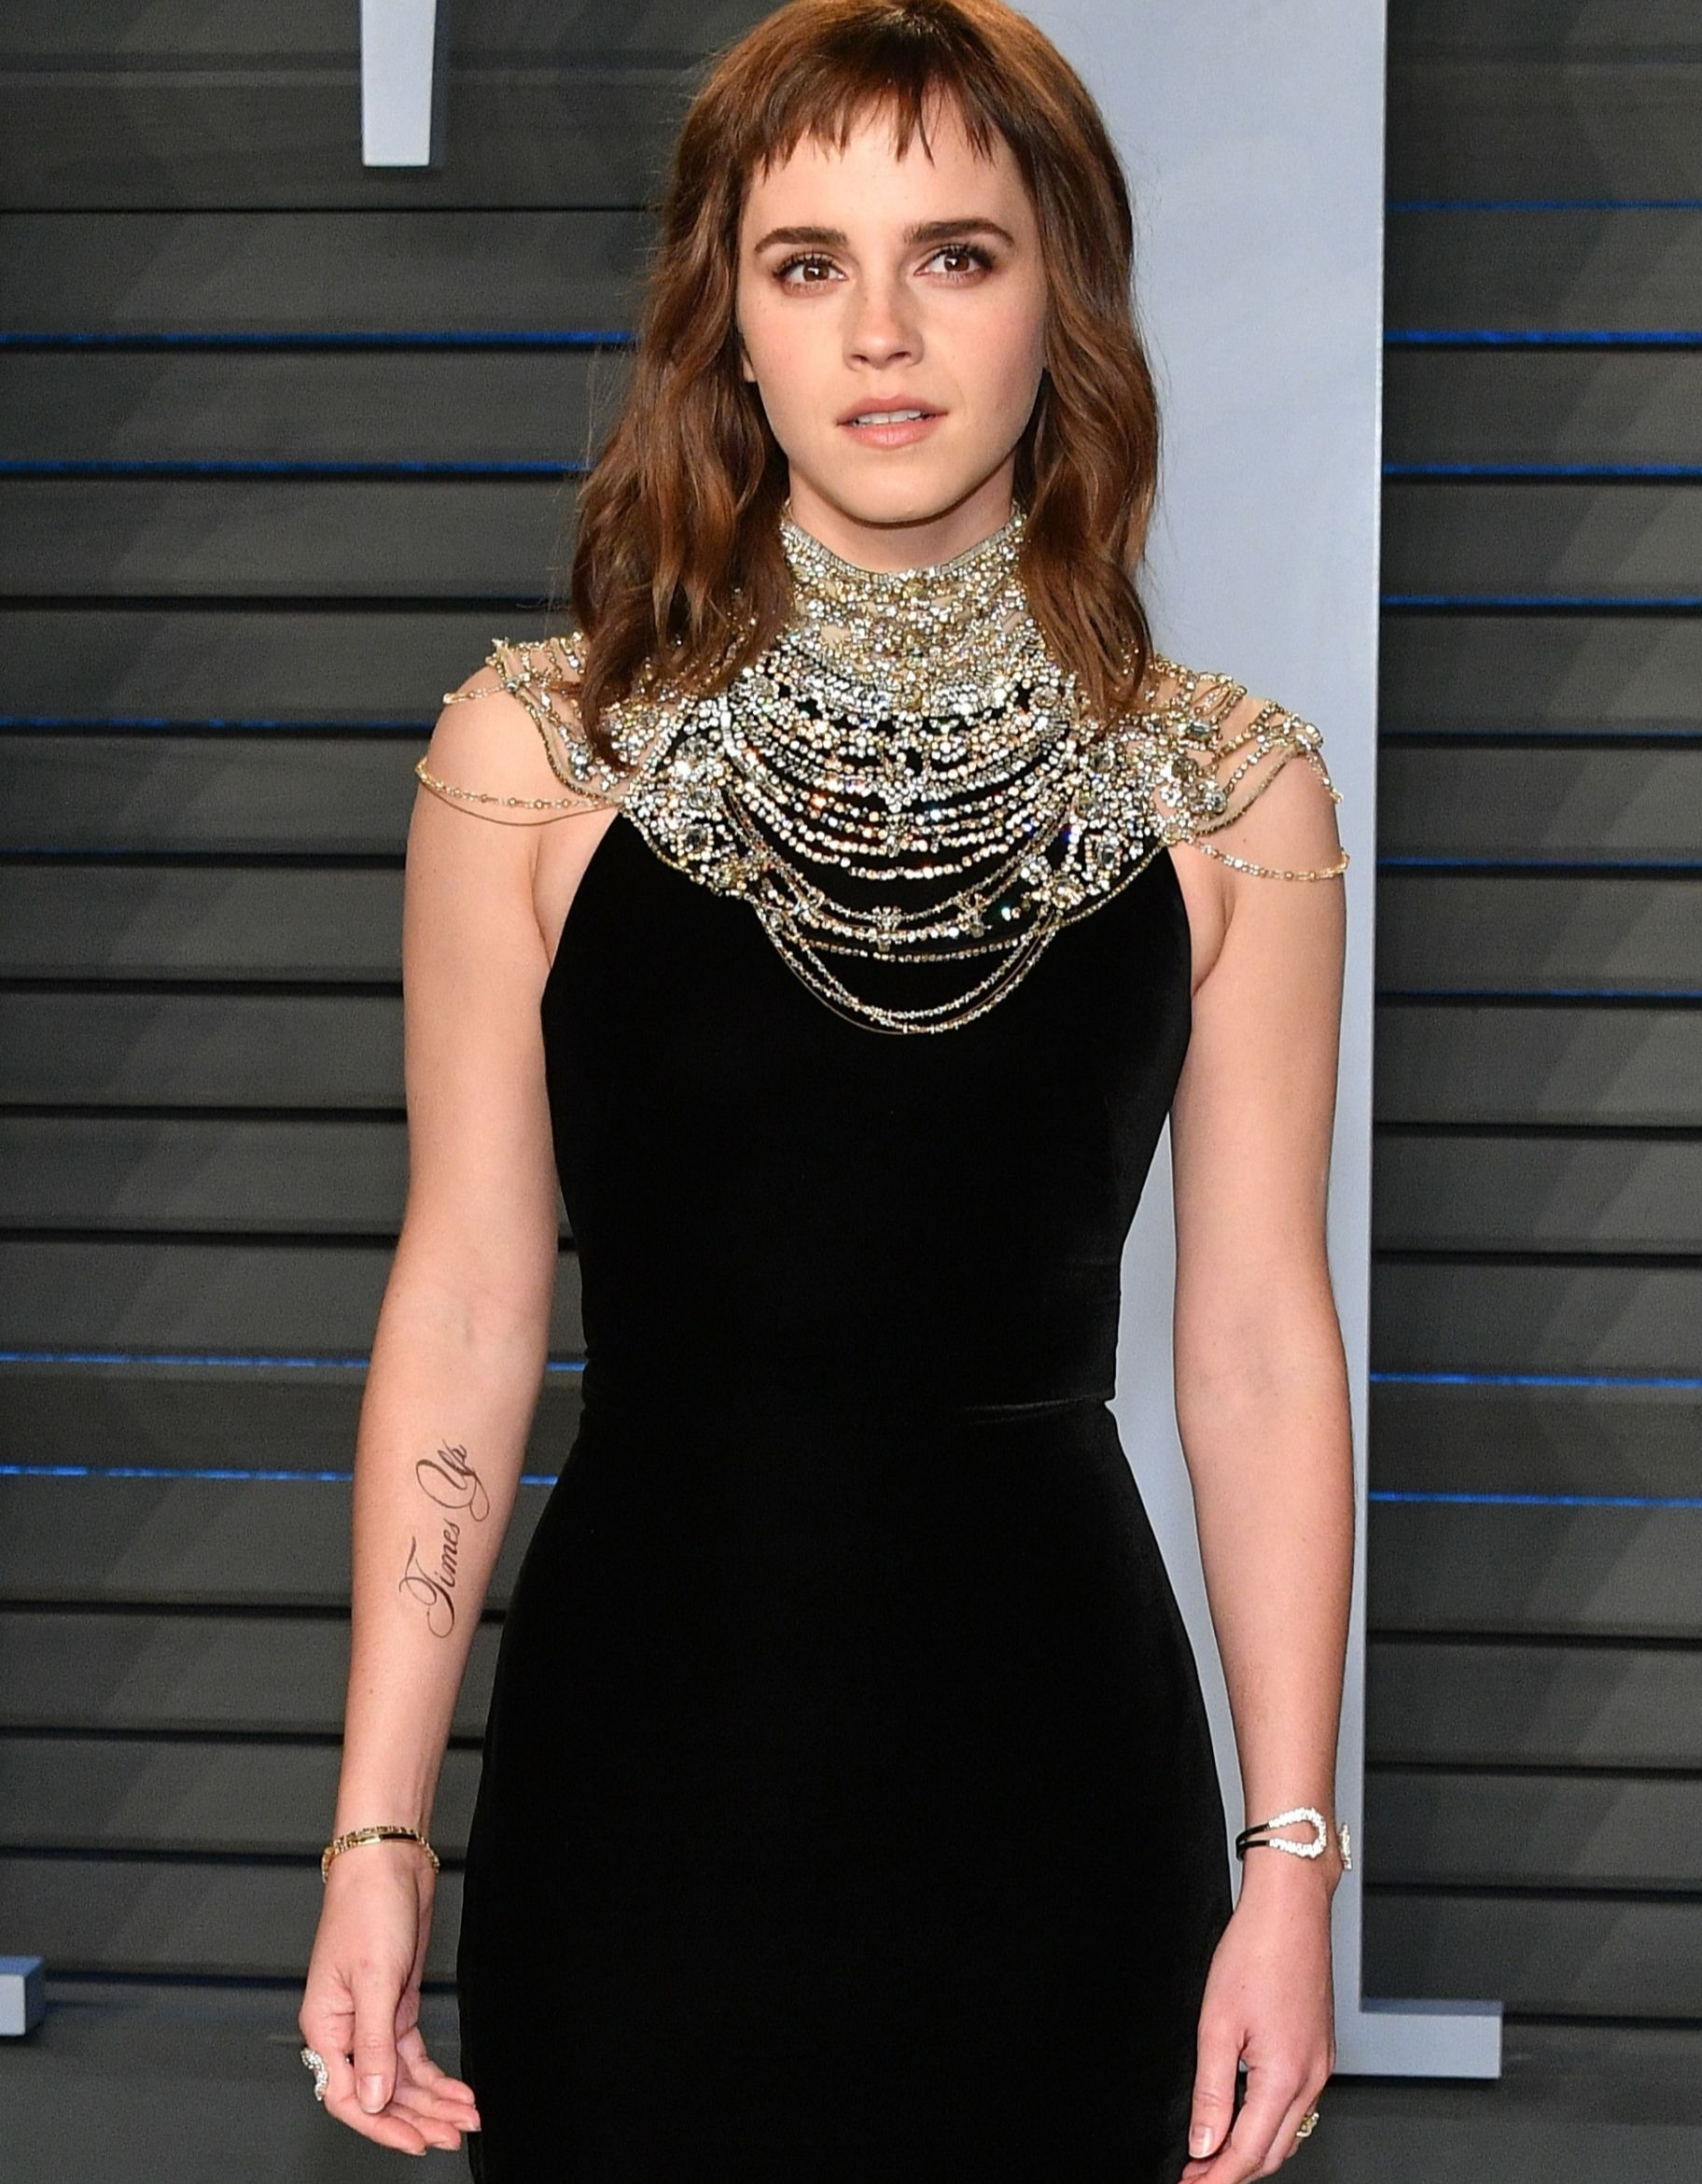 Emma Watson and her new tattoo.